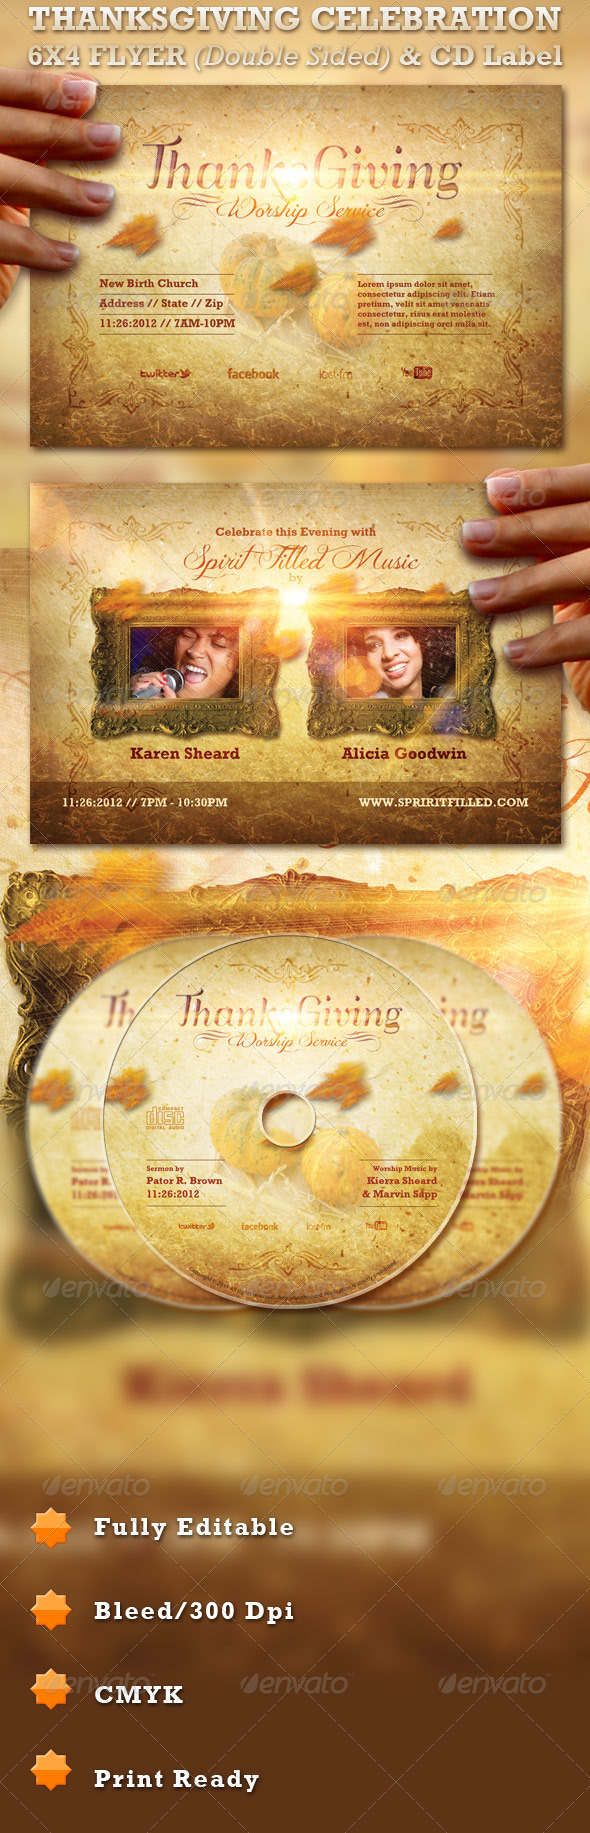 GraphicRiver Thanksgiving Celebration Flyer and CD Label 758146